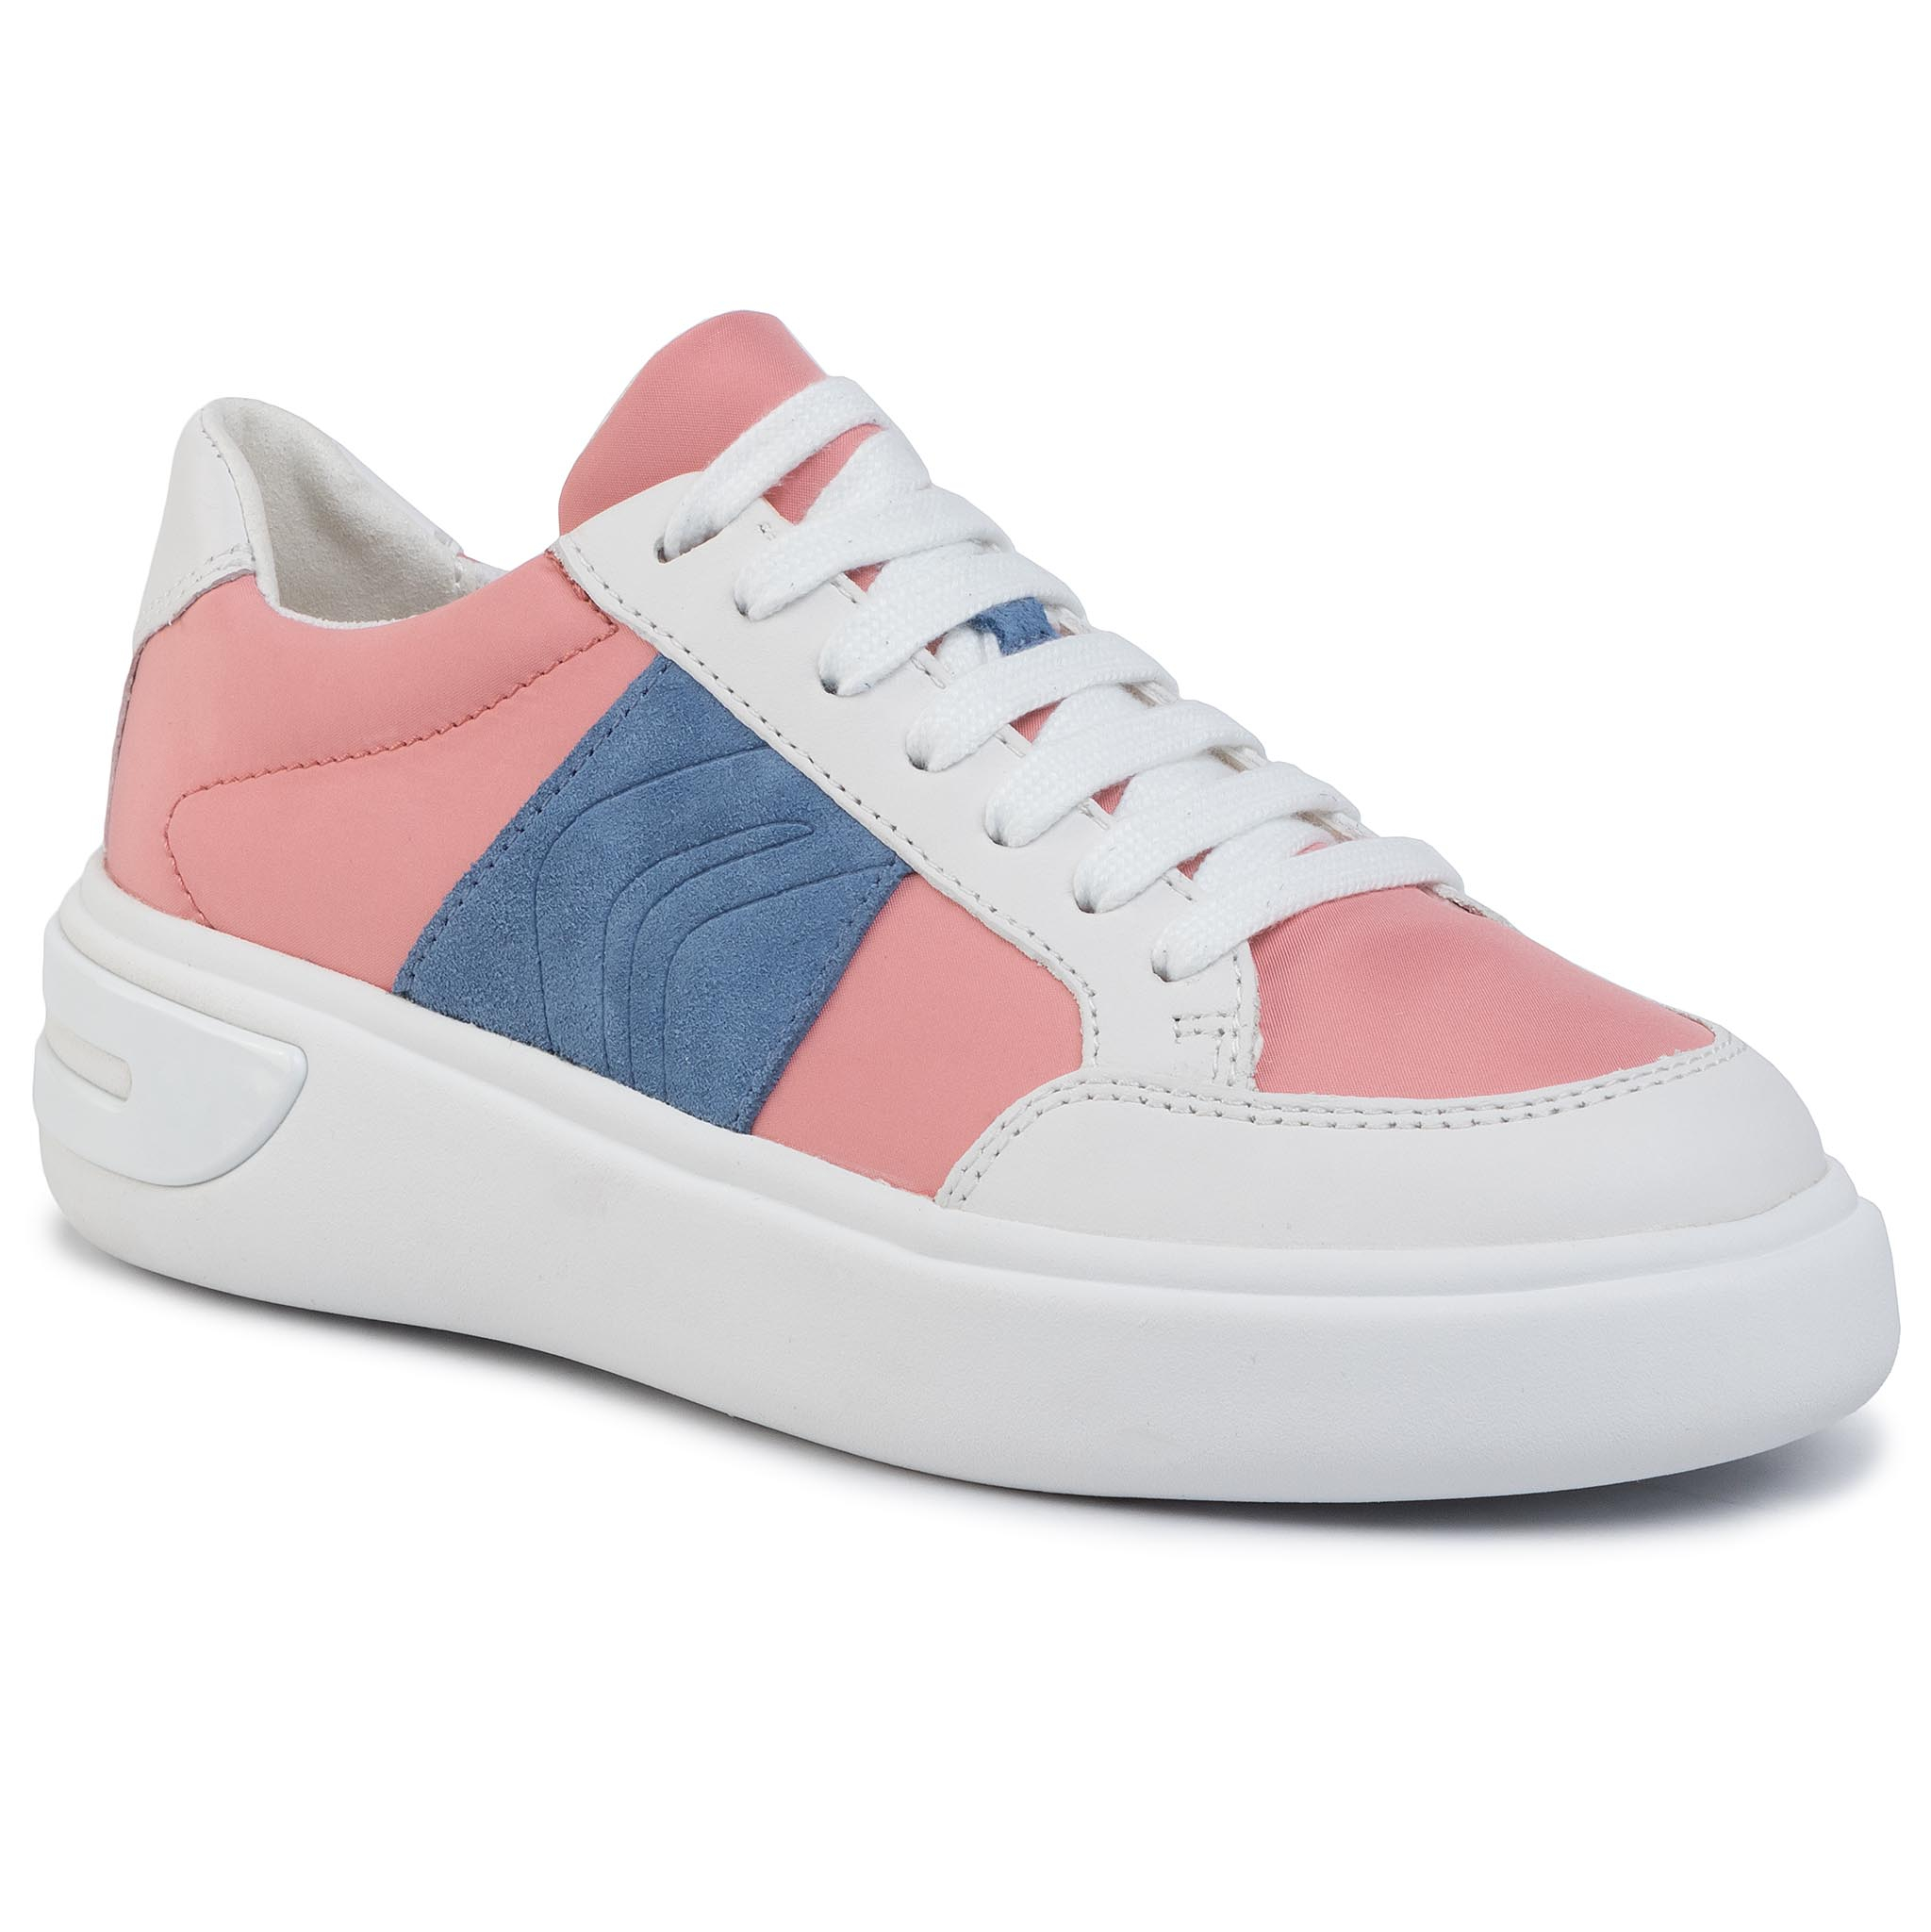 Sneakers GEOX - D Ottaya F D92BYF 01185 C7204 Coral/White